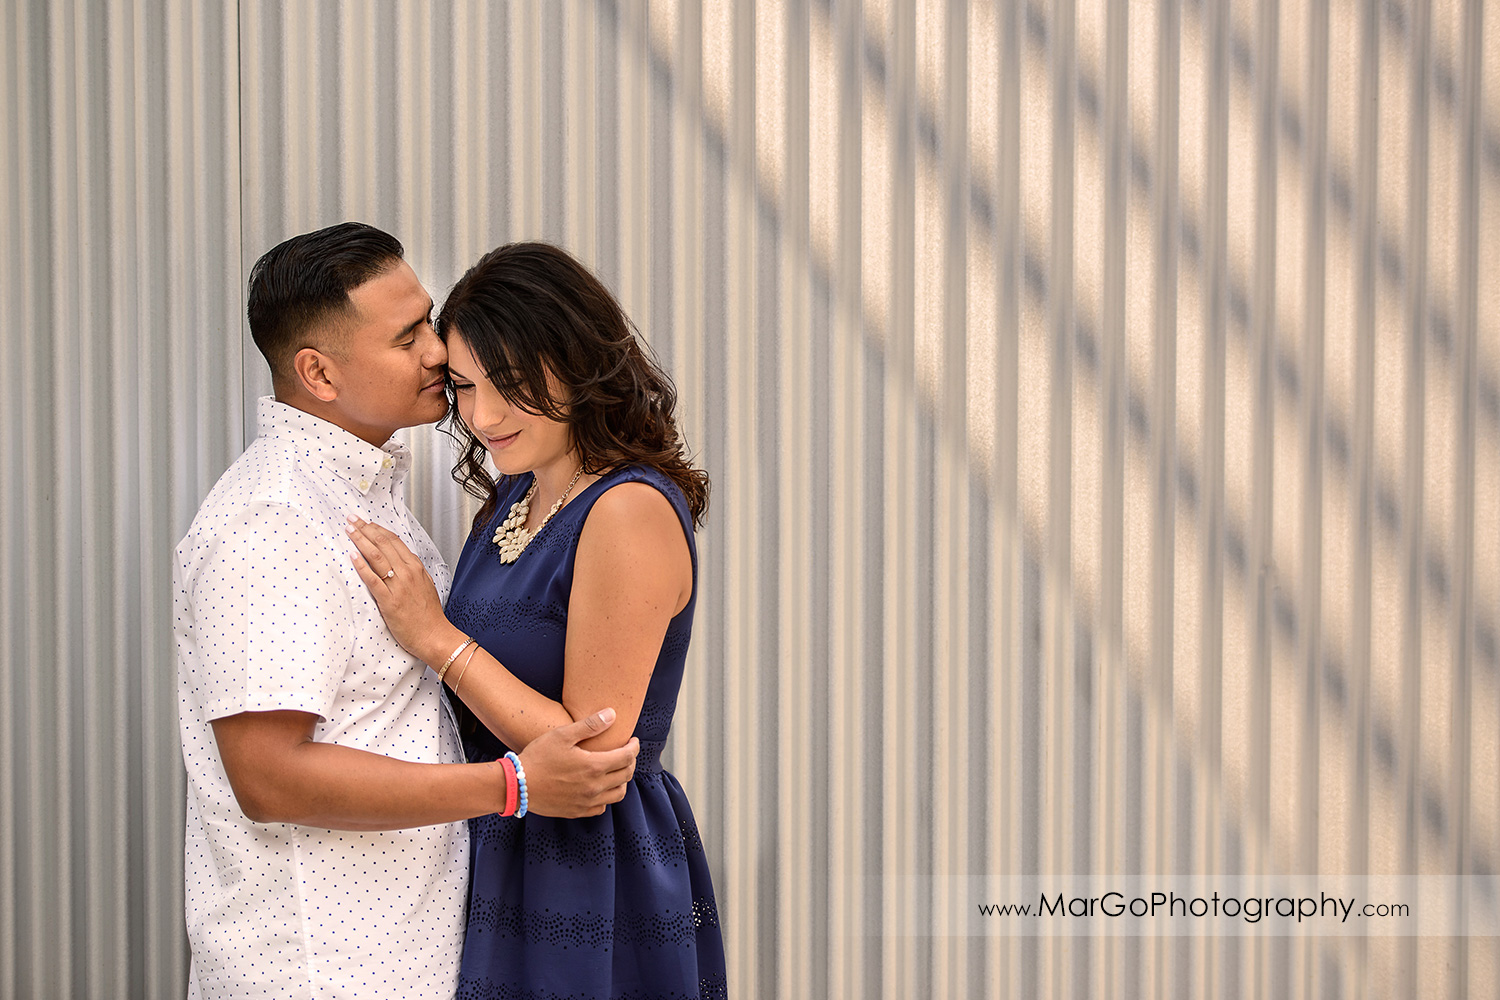 romantic portrait of woman in blue dress and man in white shirt standing standing in front of metal wall during engagement session at San Pedro Square Market in San Jose